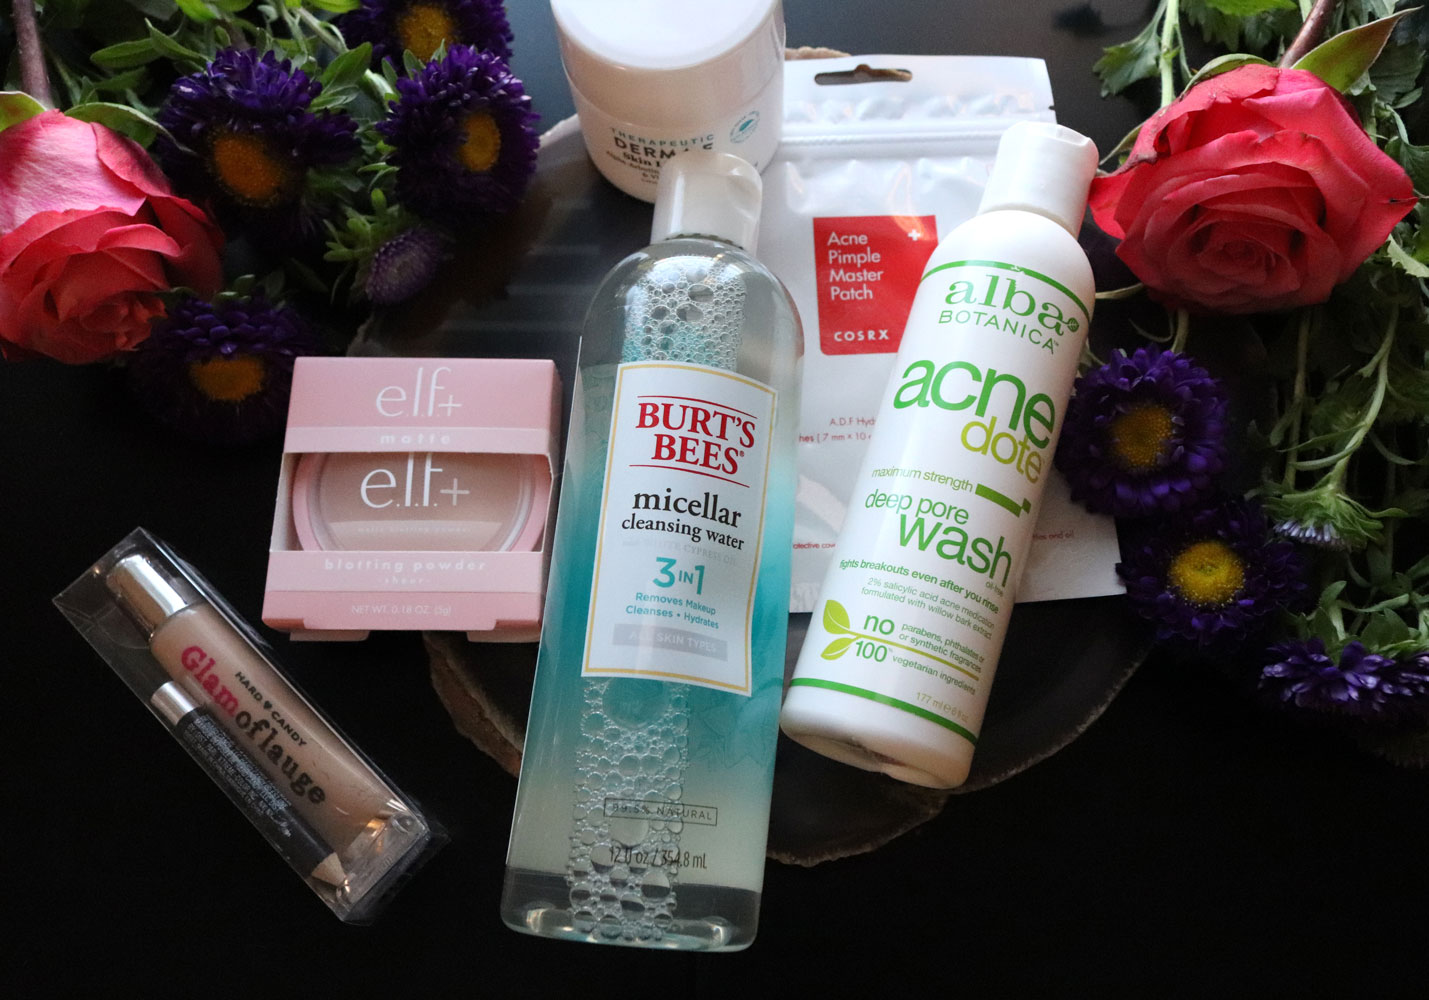 Cruelty free acne skincare products at Walmart